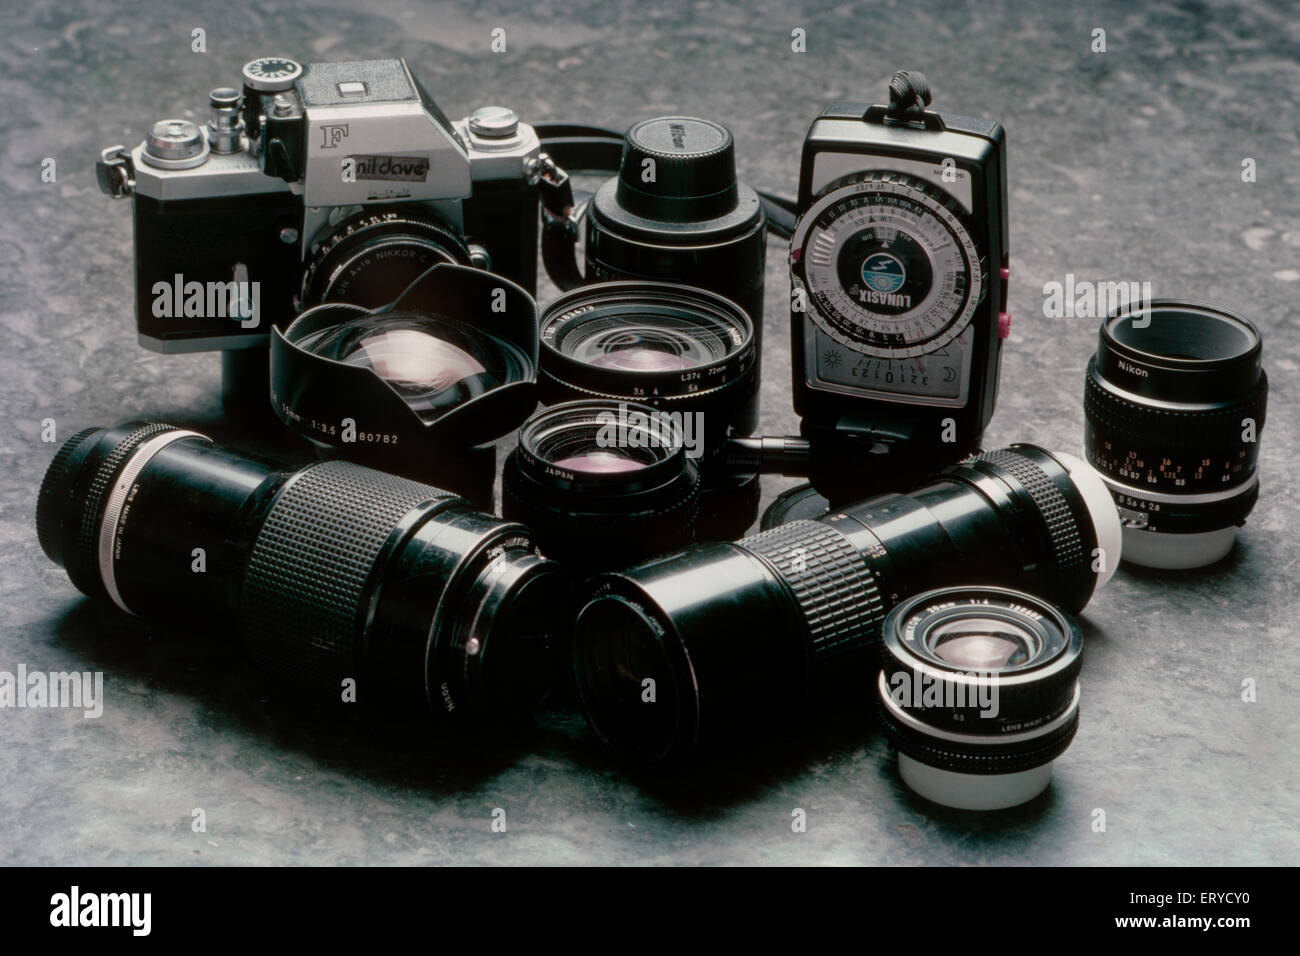 Nikon F Camera Imágenes De Stock & Nikon F Camera Fotos De Stock - Alamy